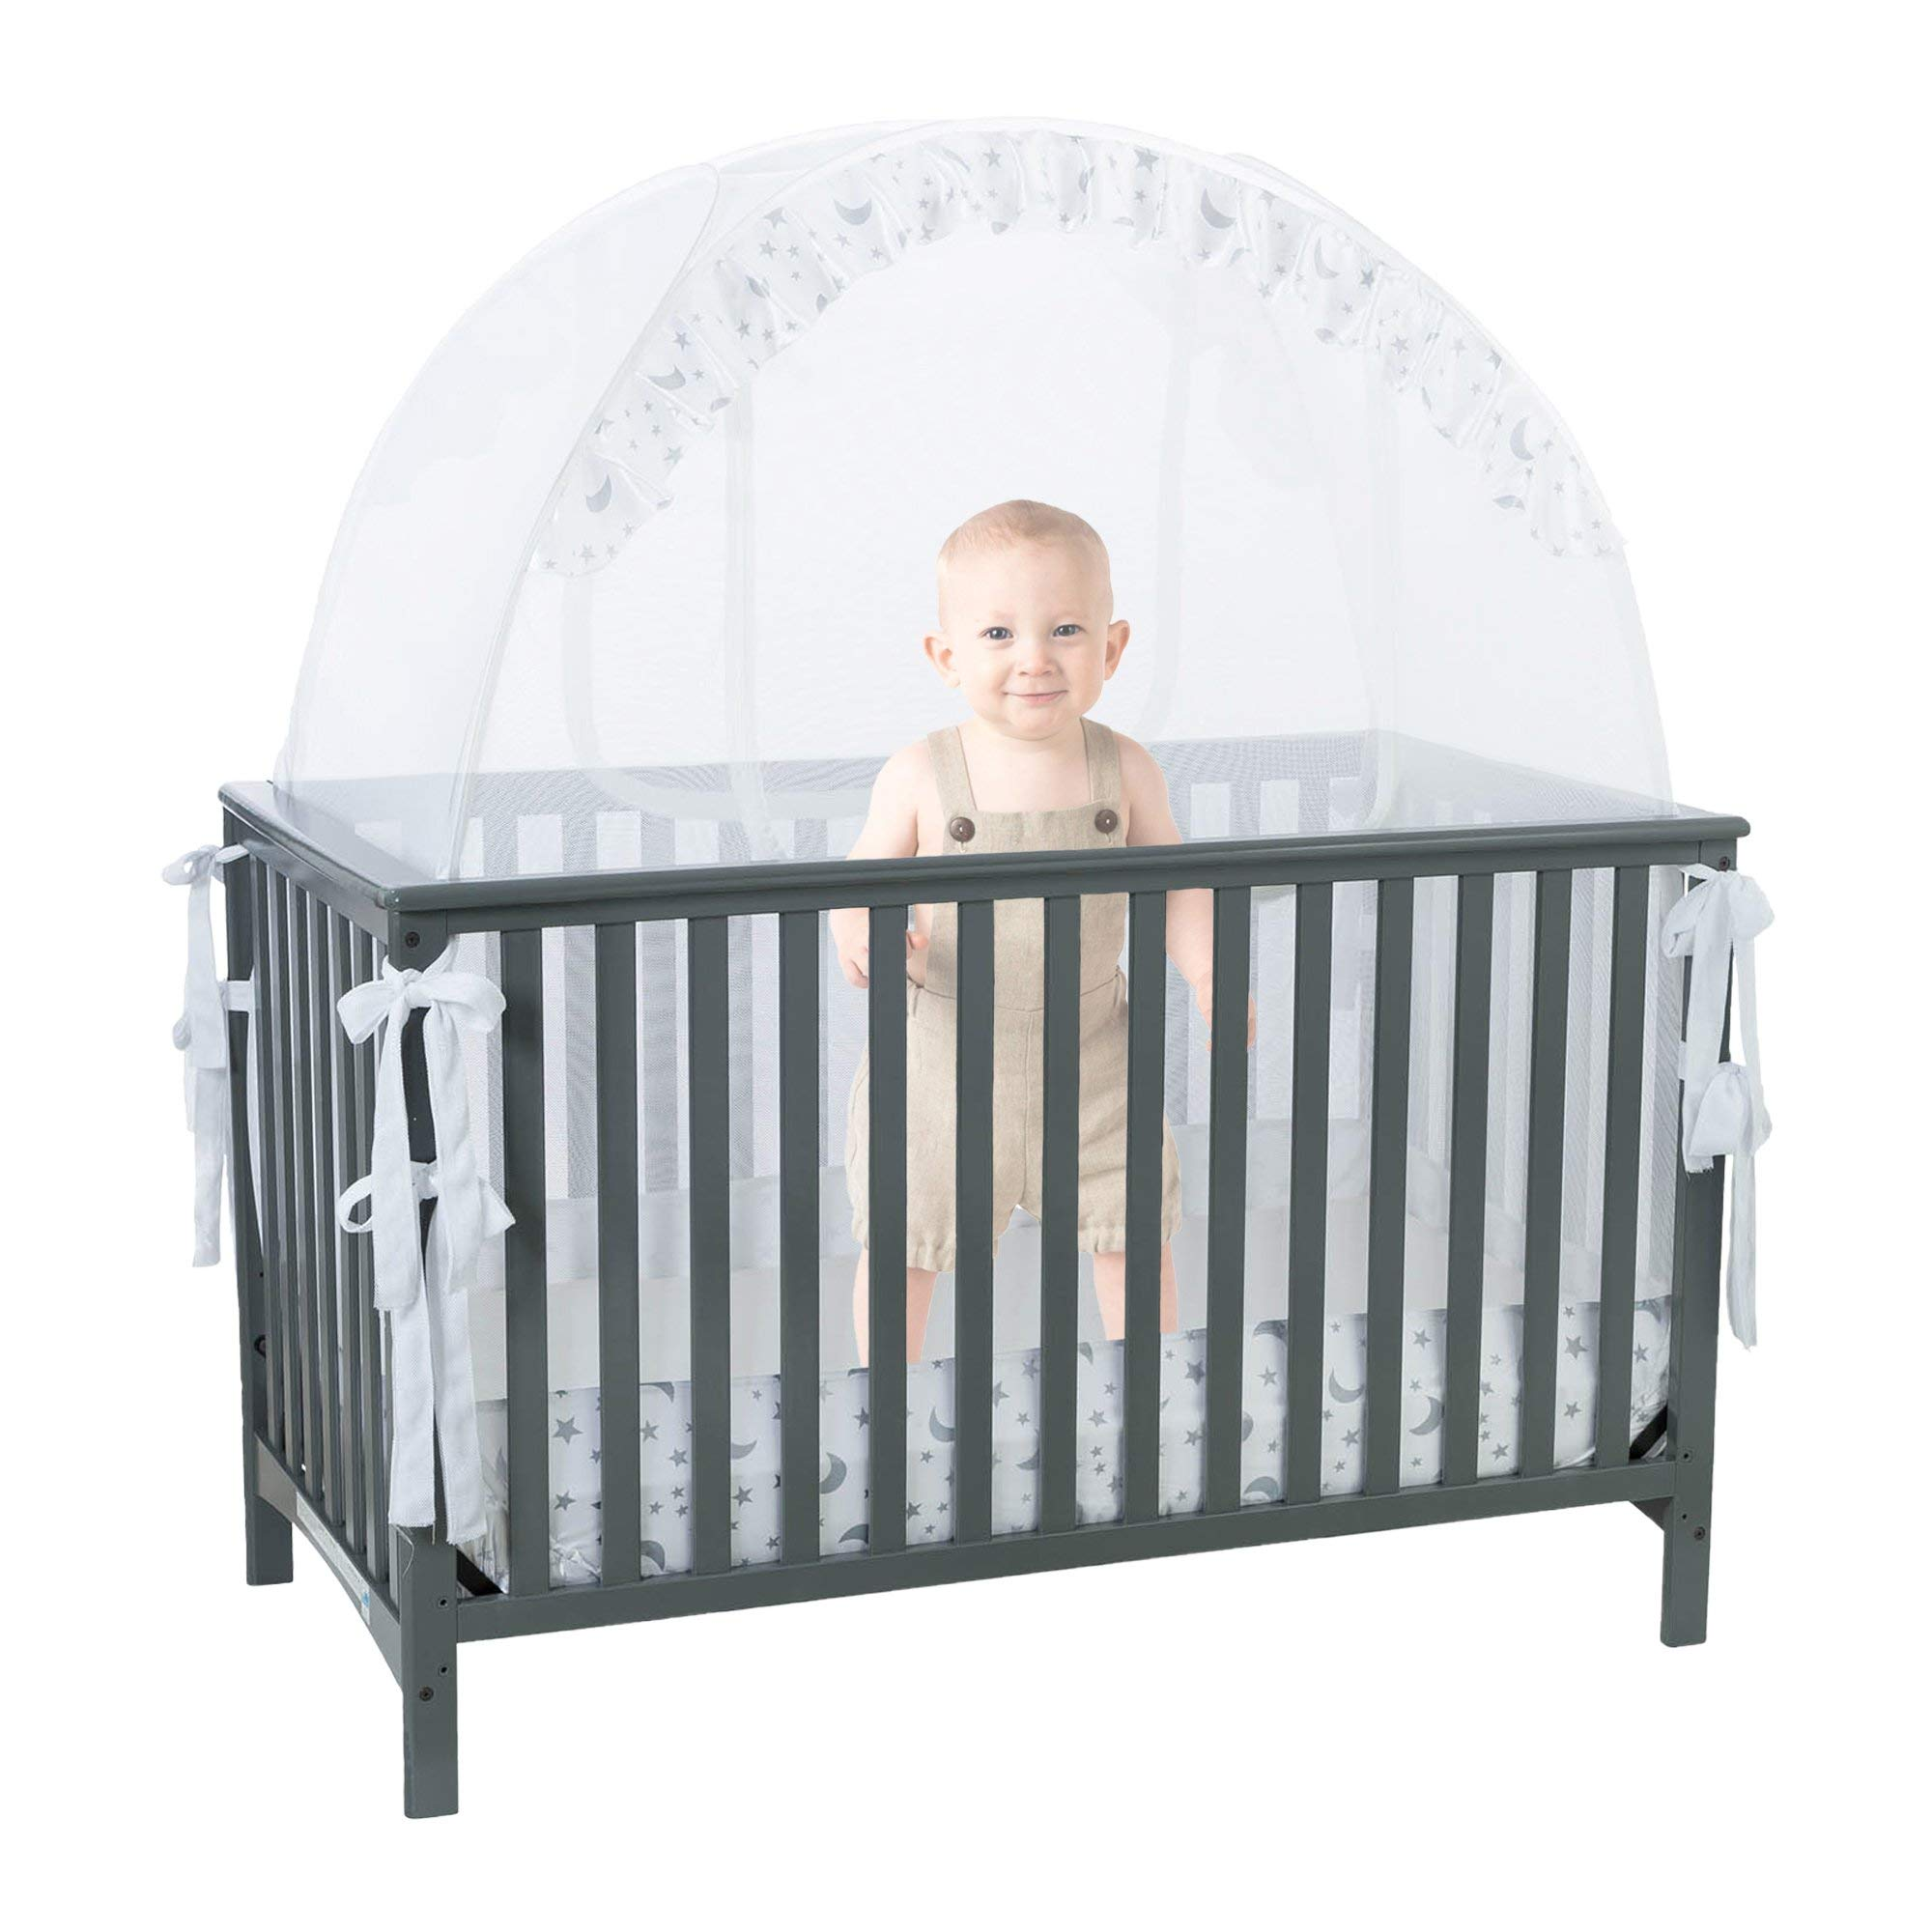 Baby Crib Safety Pop up Tent: Premium Baby Bed Canopy Netting Cover  See Through Mesh Top Nursery Mosquito Net  Stylish and Sturdy Unisex Infant Crib Tent Net  Protect Your Baby from Falls and Bites by 1st Baby Safety